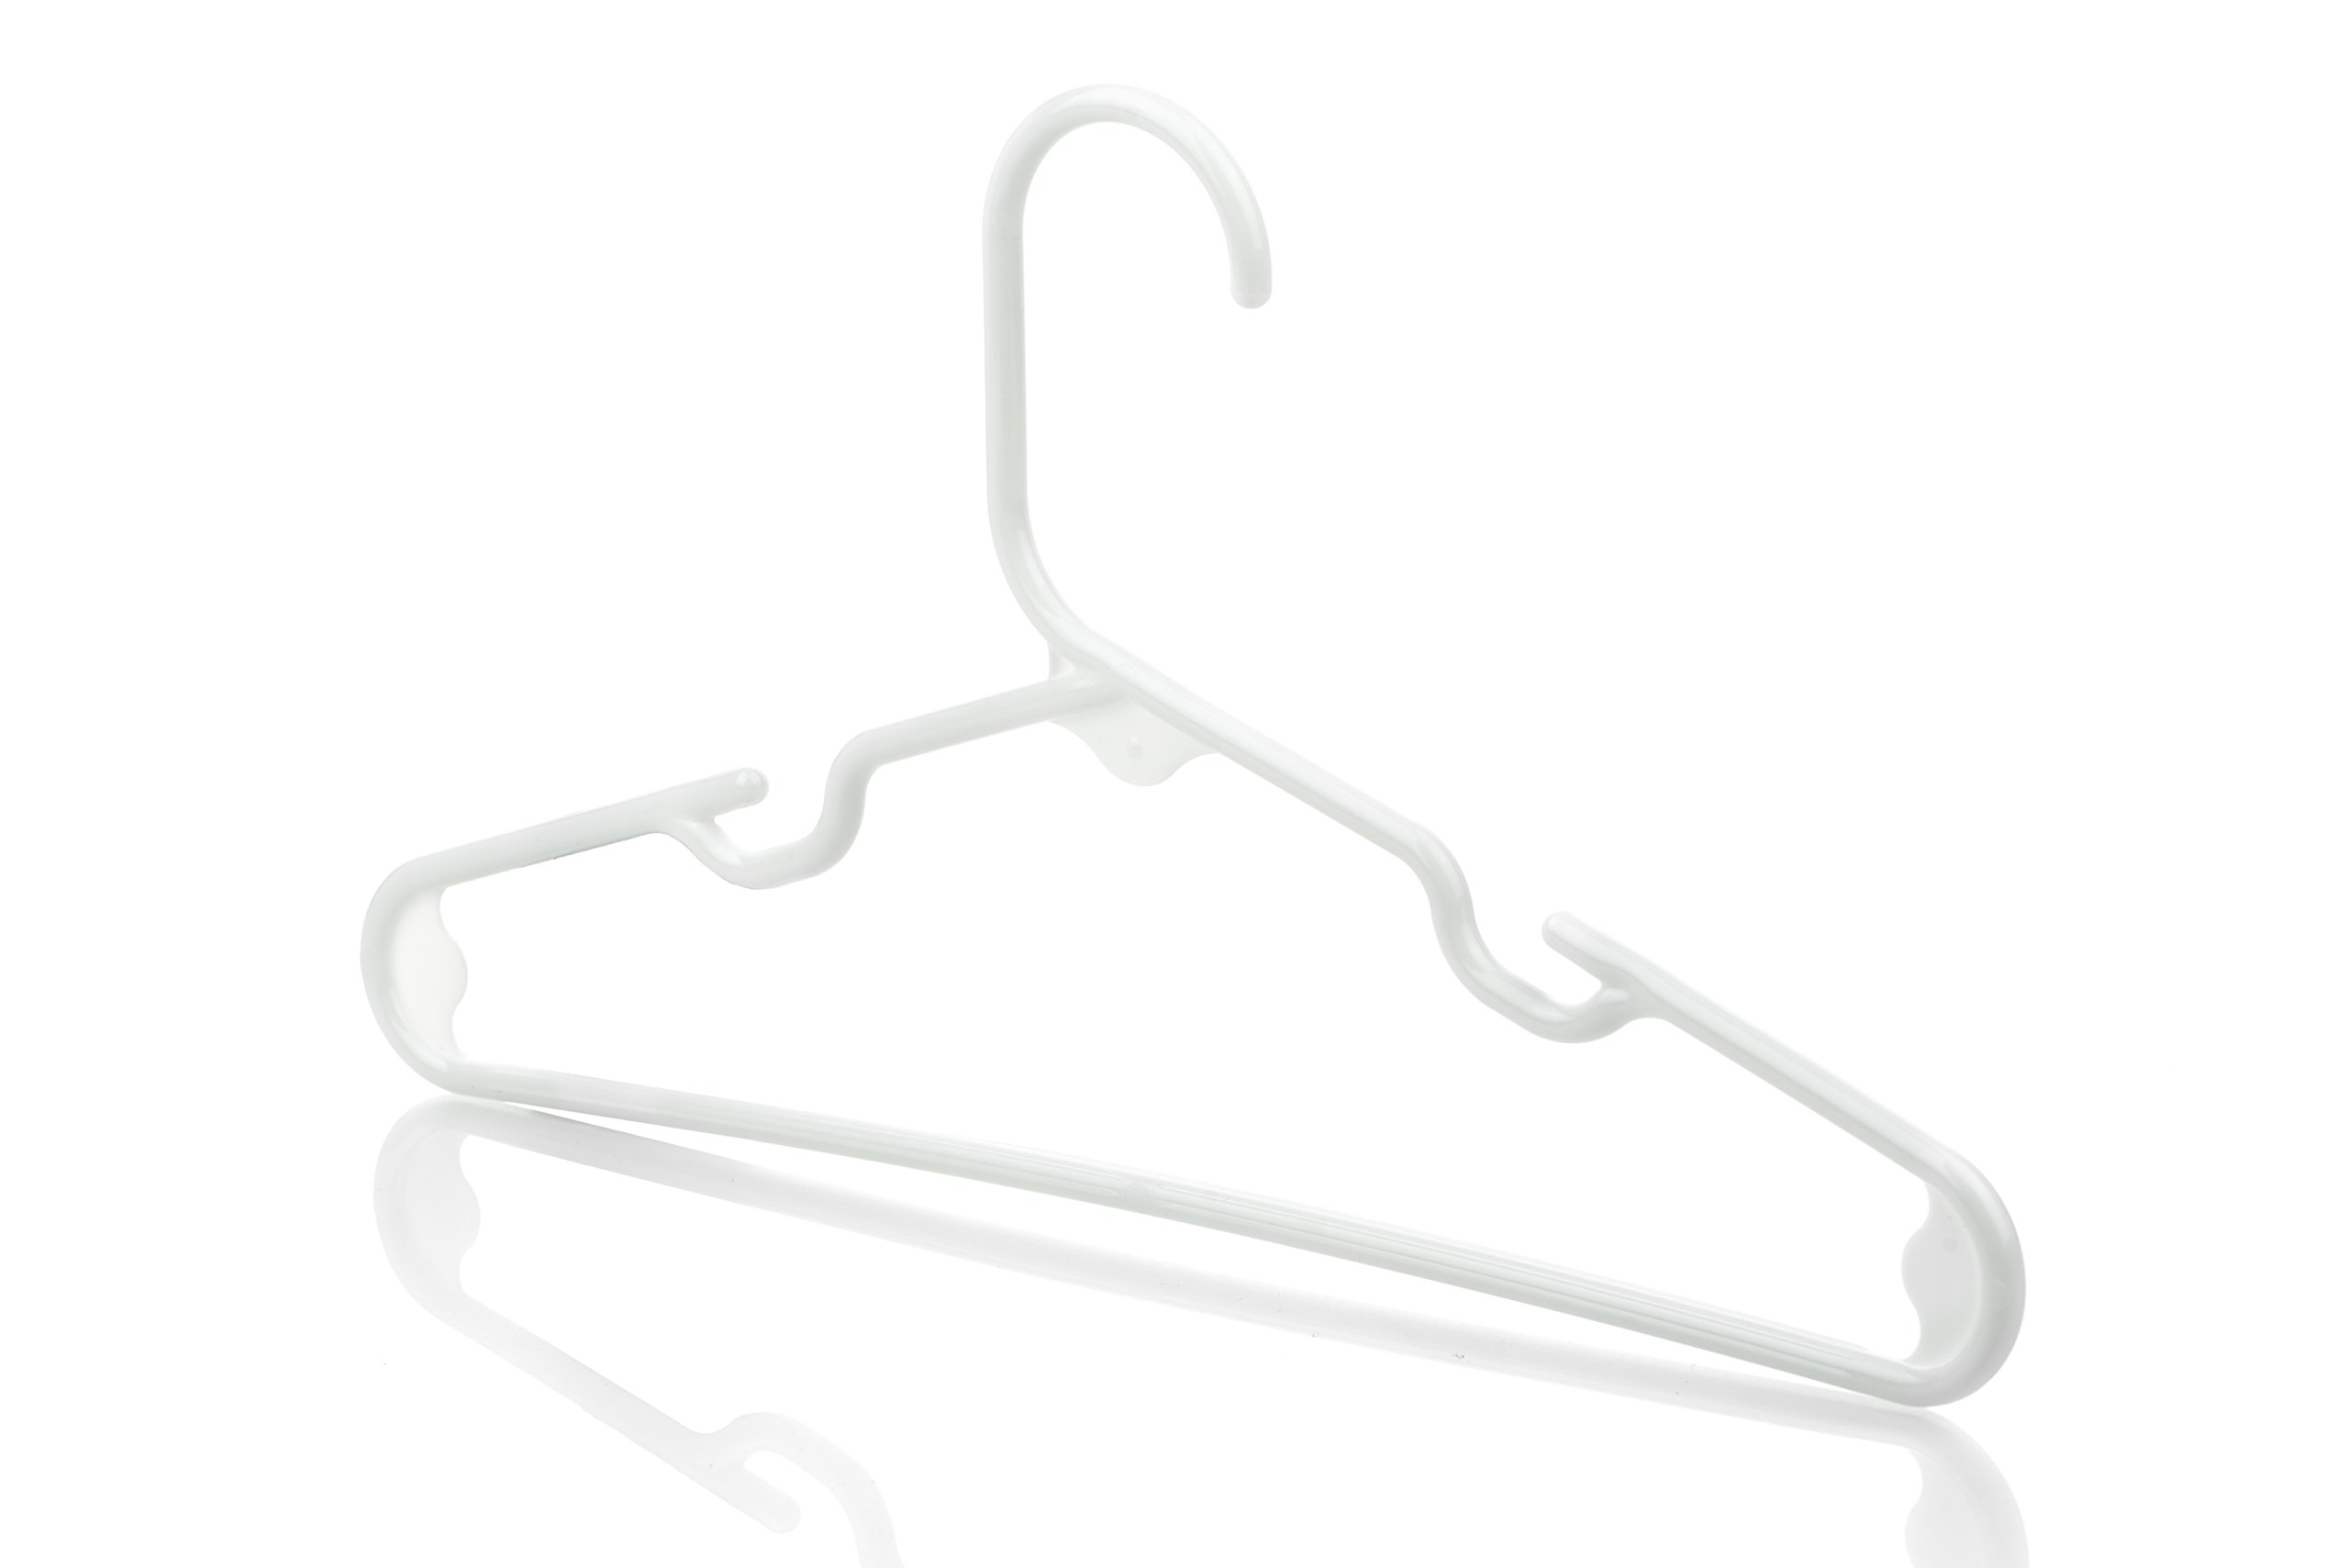 Neaties USA Made Children's Small White Plastic Hangers, 60pk by Neaties (Image #3)